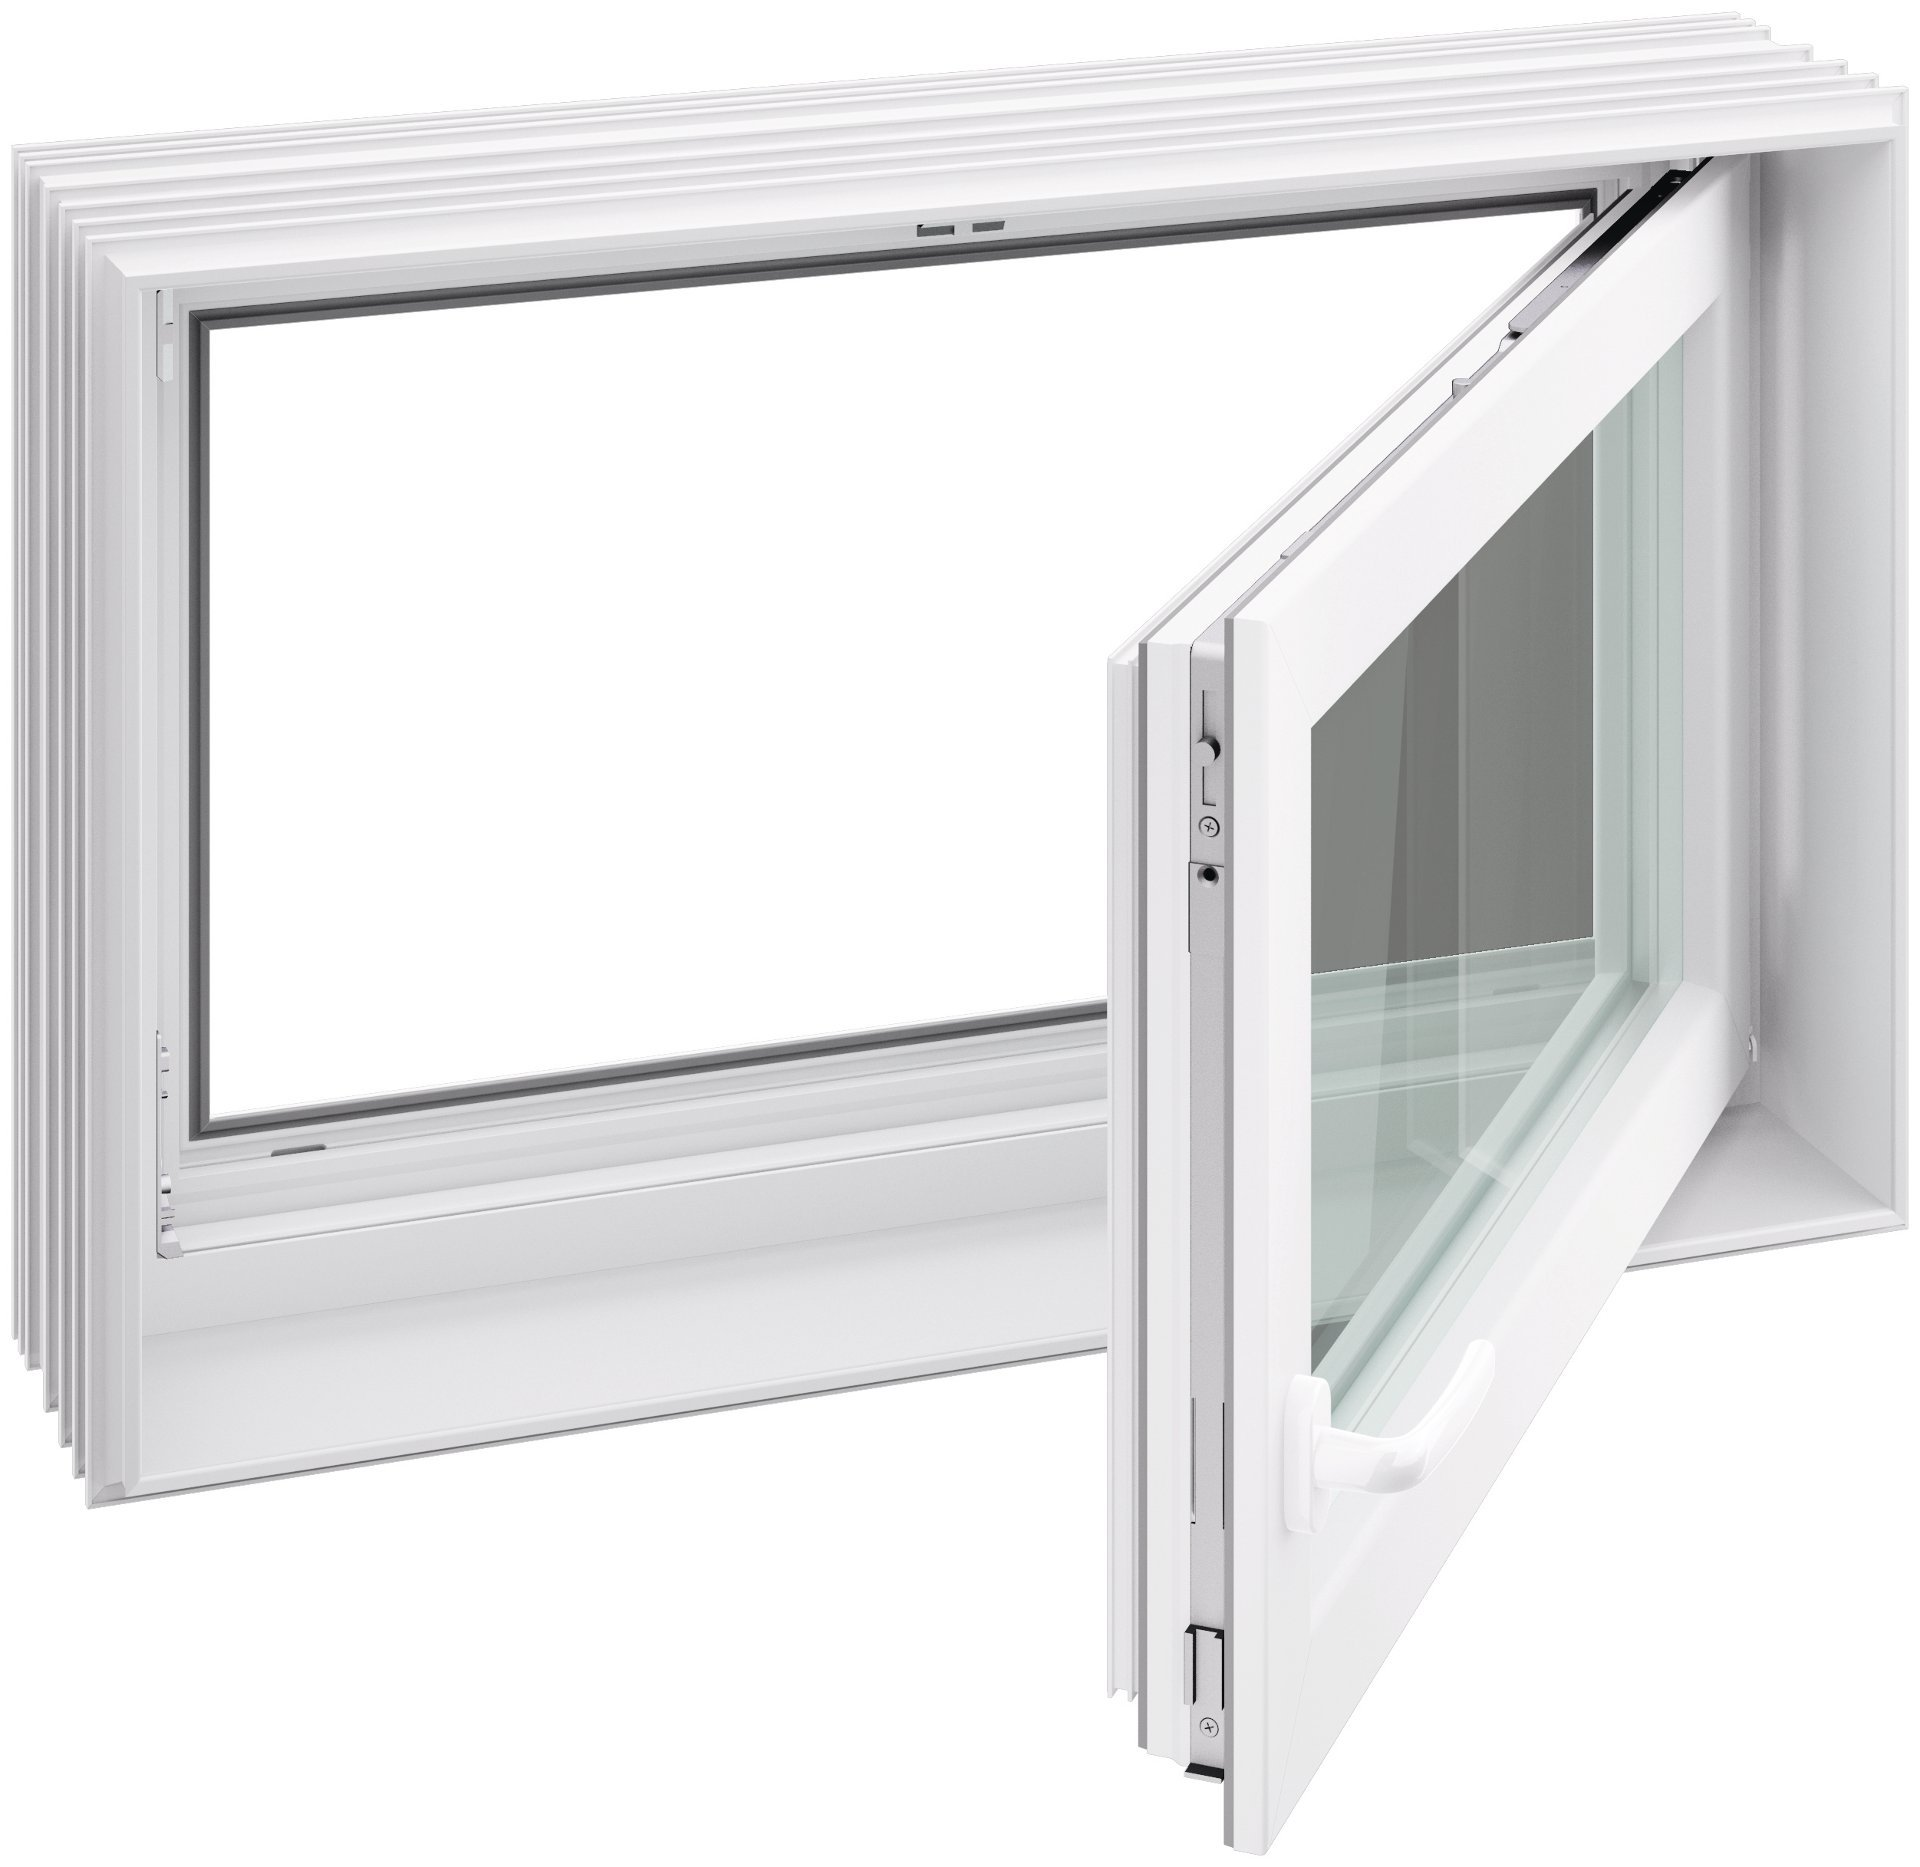 Aco Therm Kellerfenster